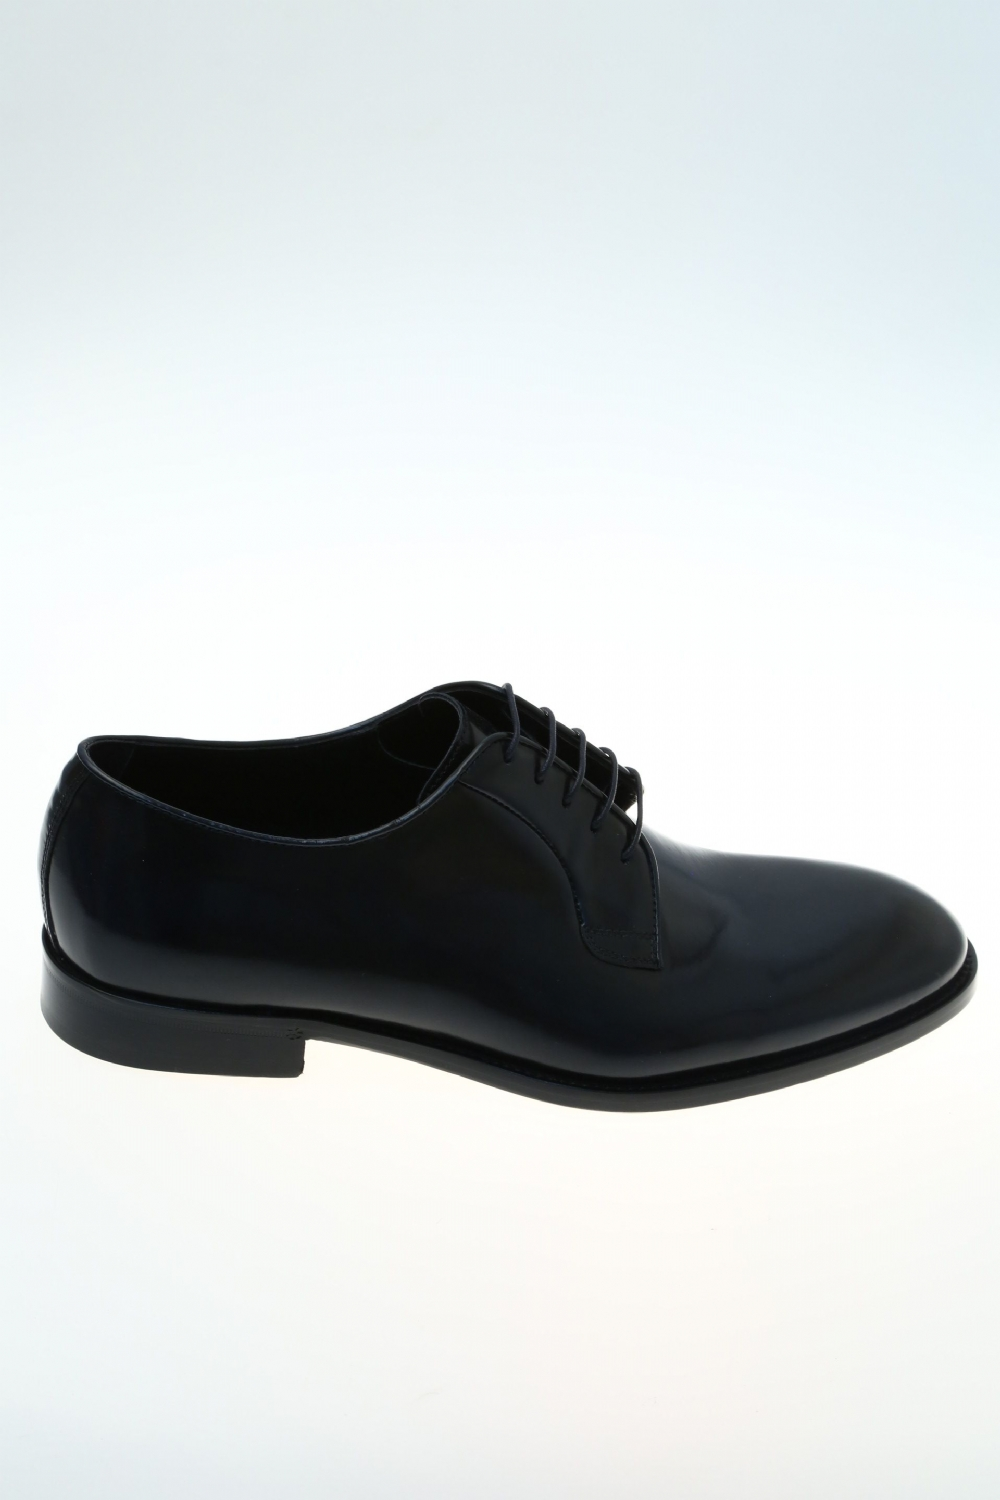 FOOTWEAR - Lace-up shoes Corvari y89qI